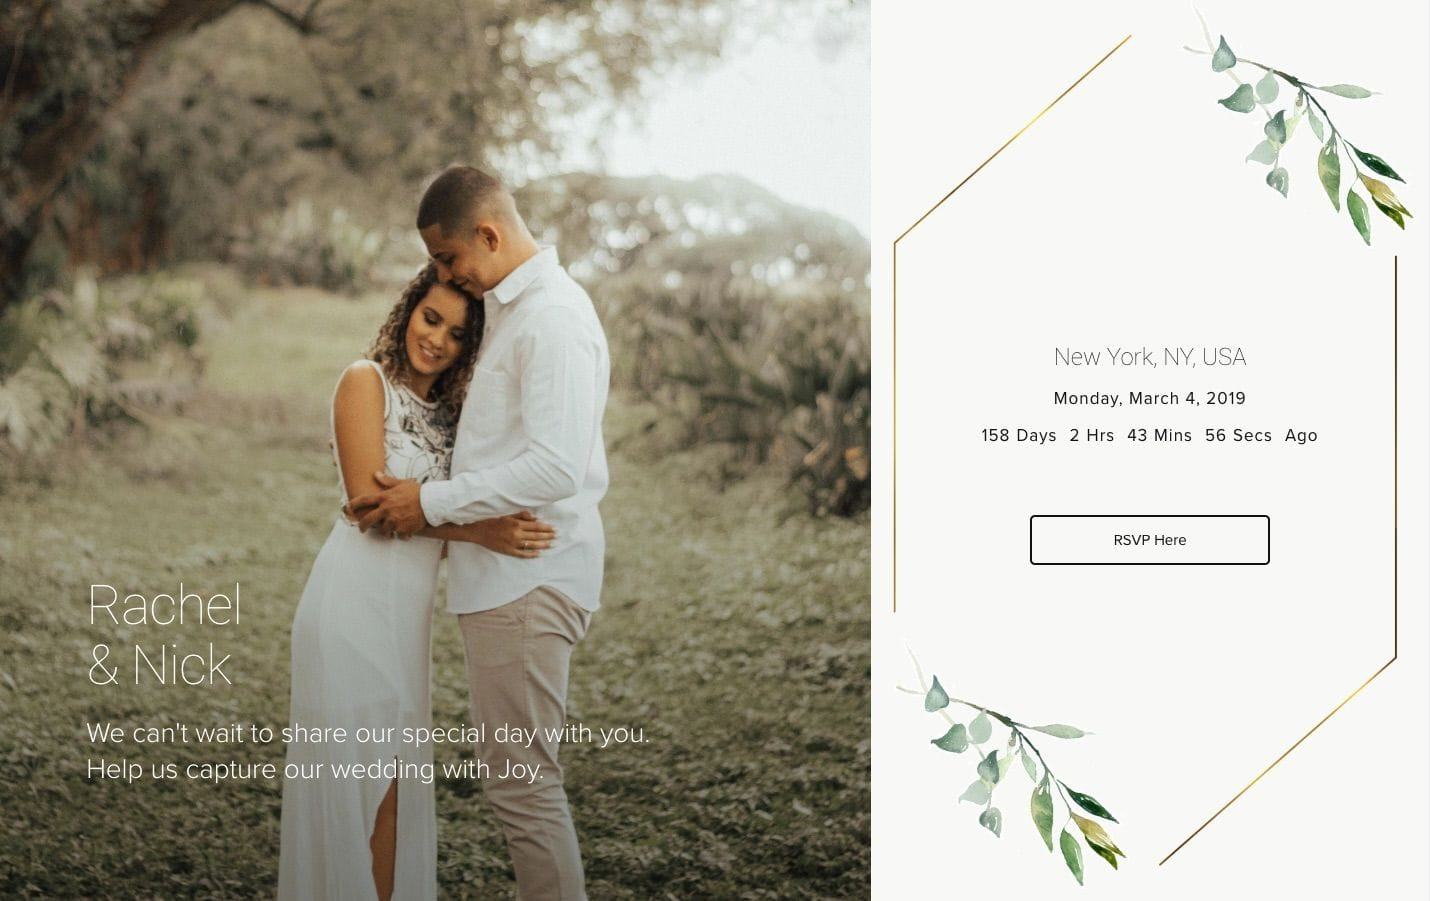 10 Important Questions to Answer in Your Wedding Website FAQ - Joy